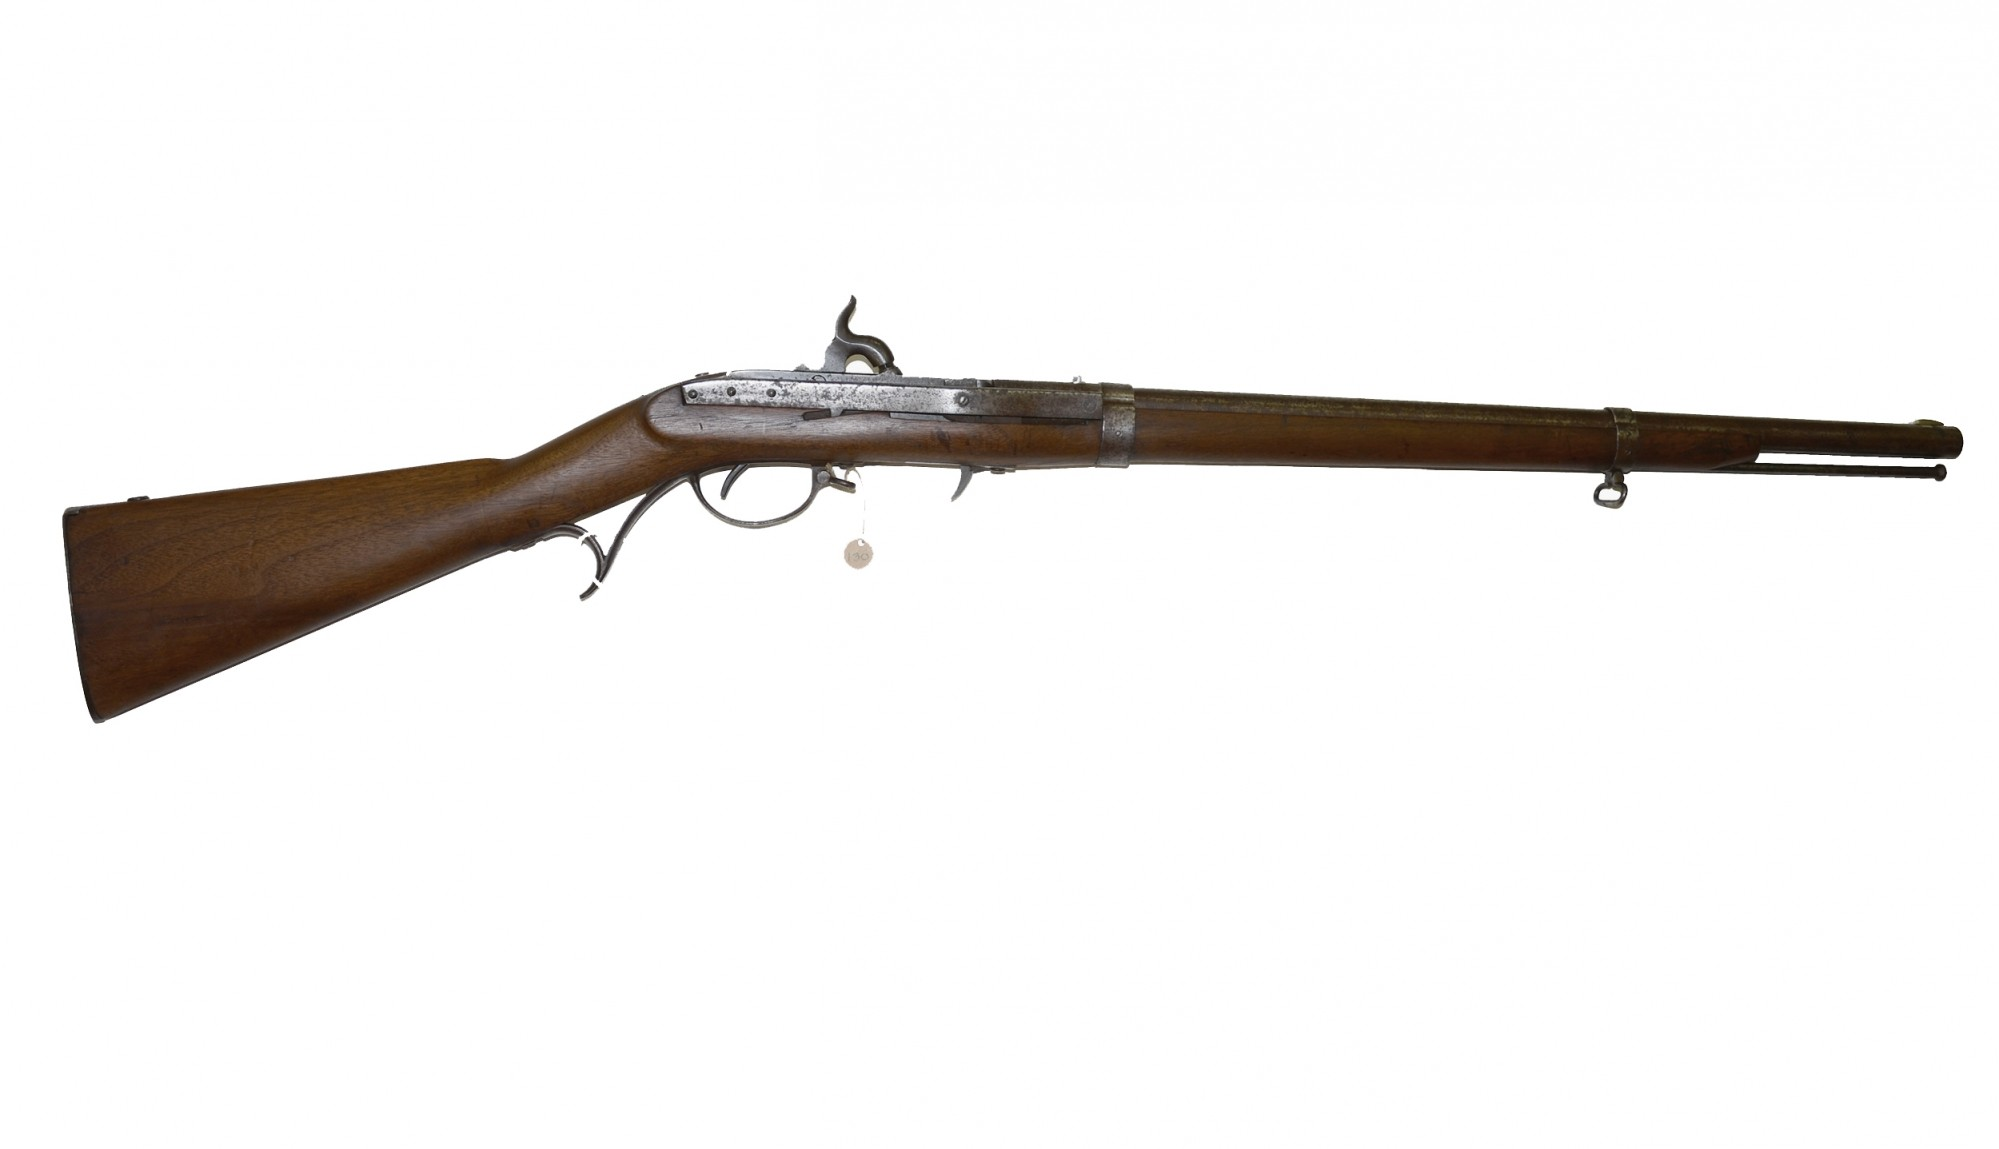 CUTDOWN HARPER'S FERRY MODEL 1841 HALL RIFLE - POSSIBLE CONFEDERATE ALTERATION